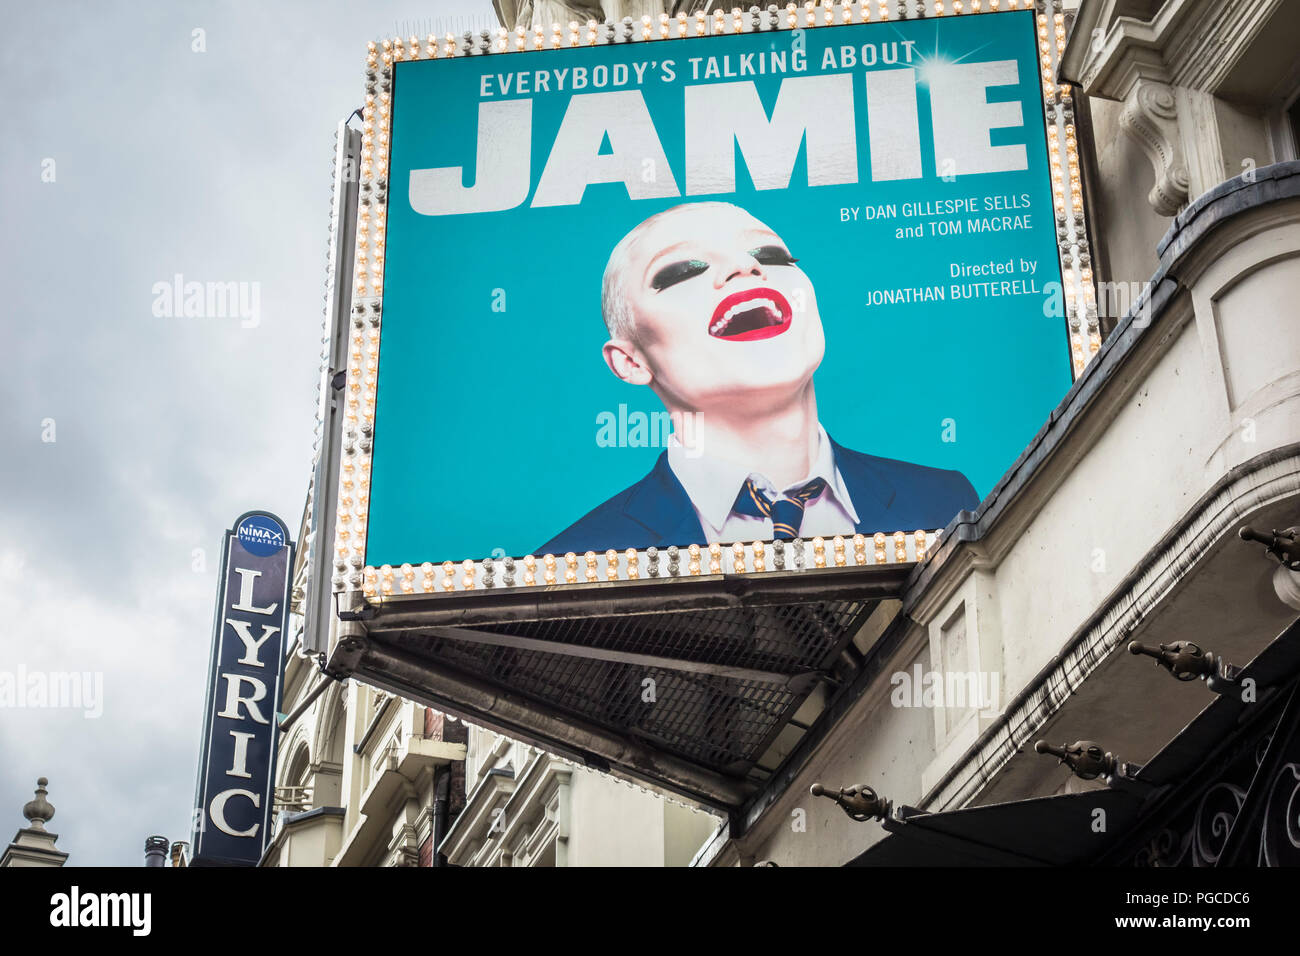 Everybody's Talking About Jamie feelgood musical at the Apollo Theatre, Shaftesbury Avenue, London, UK - Stock Image